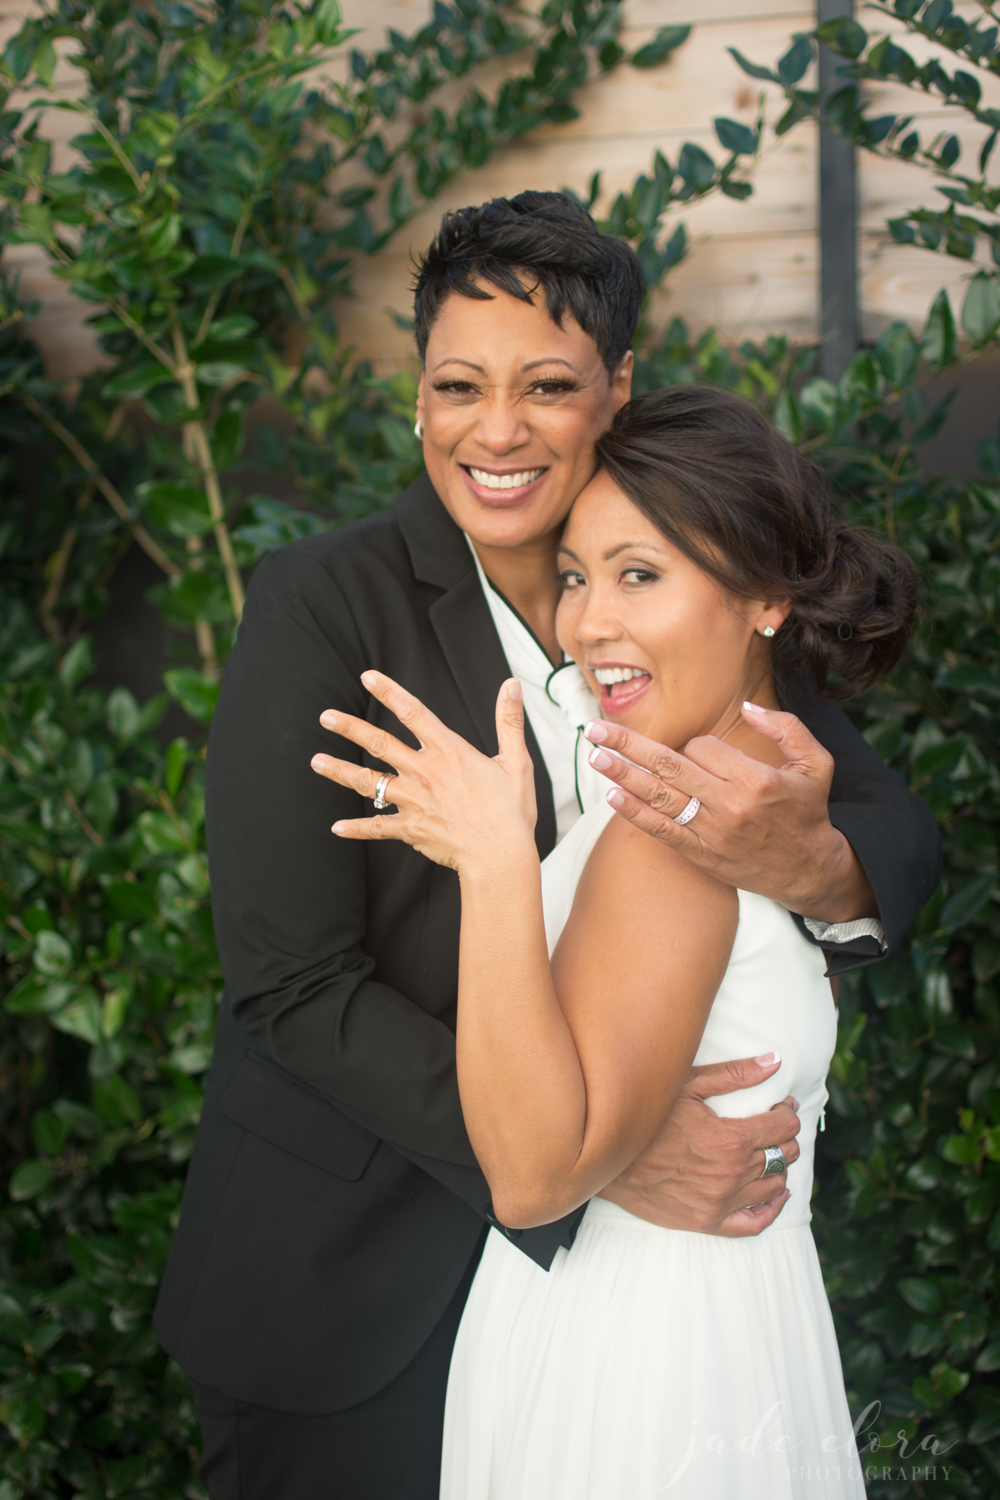 Glendale-Wedding-Photographer-Jade-Elora-Los-Angeles-170111164.jpg